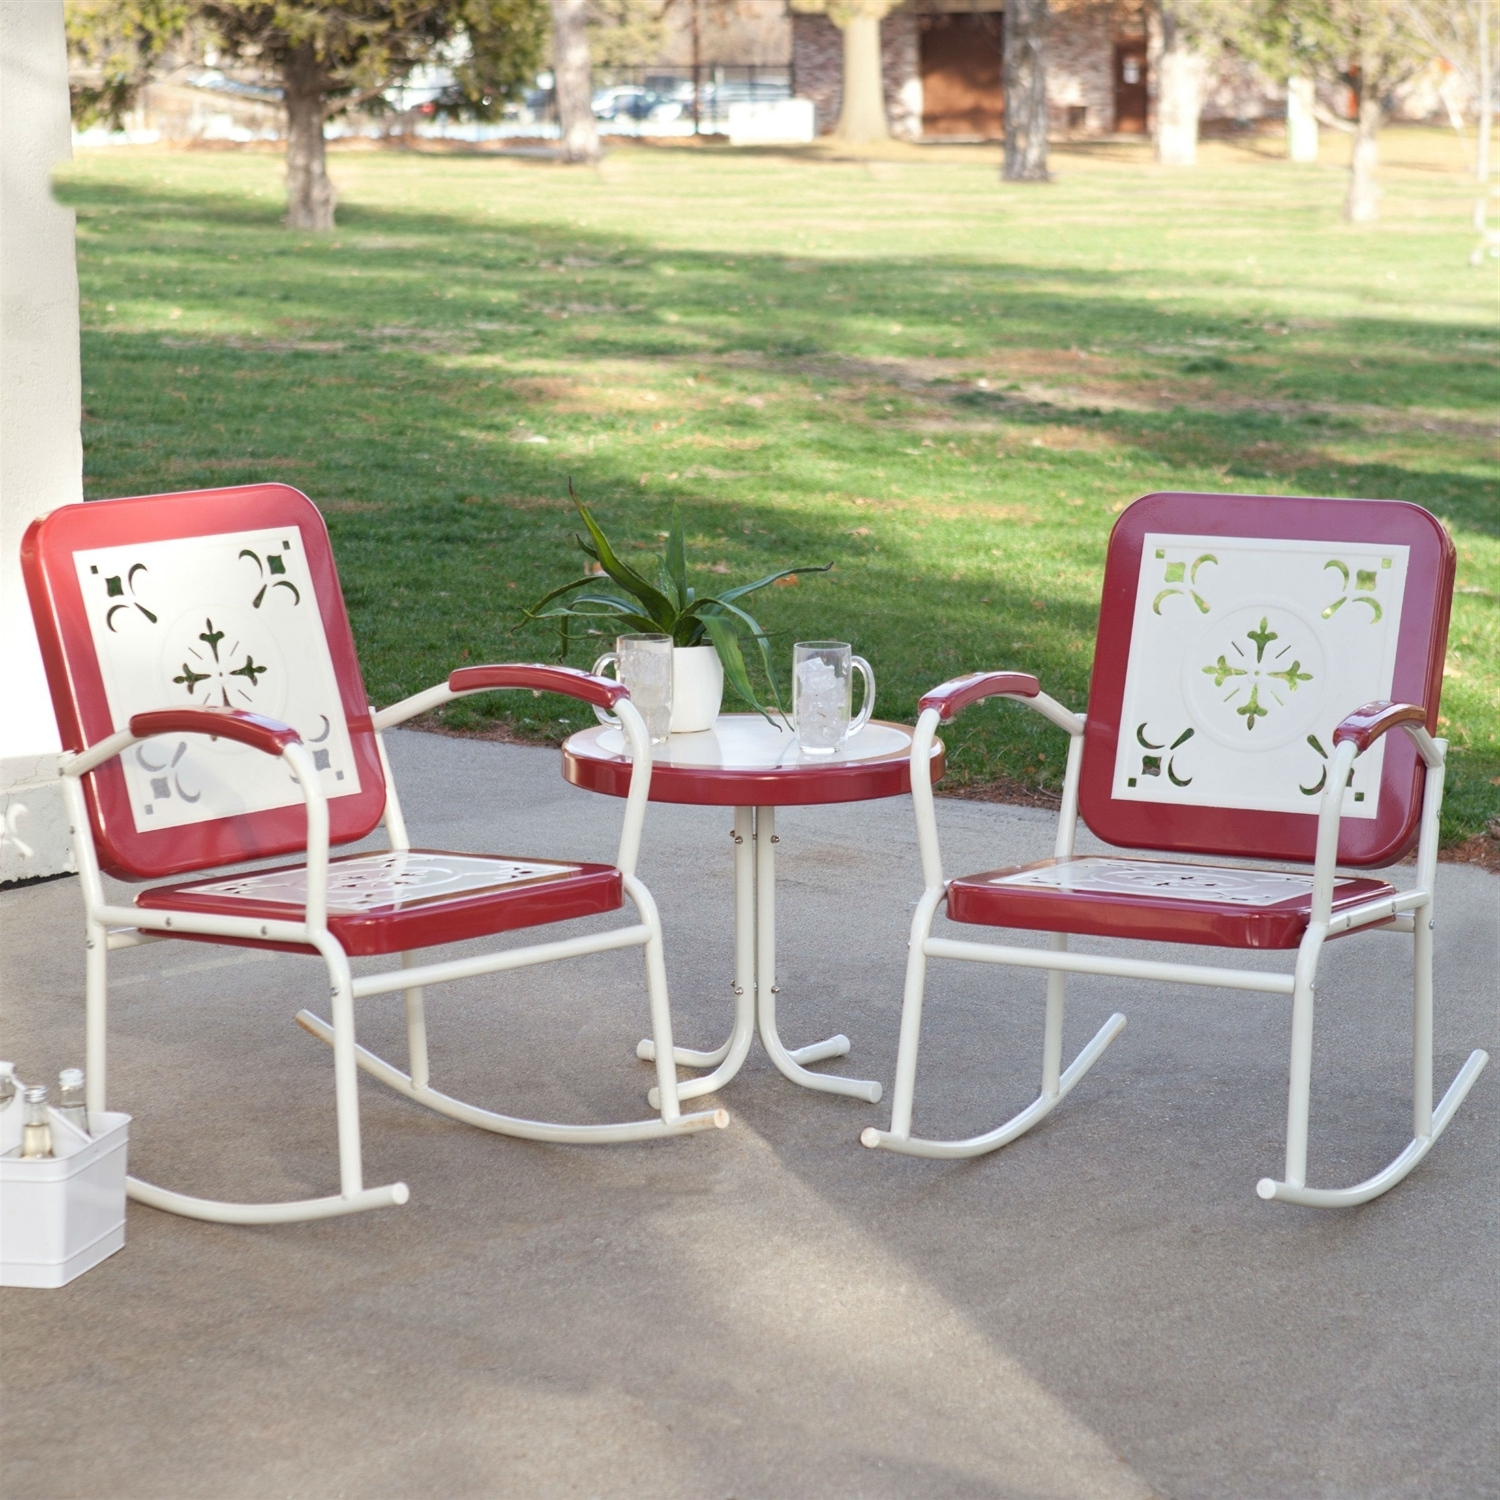 Widely Used Cherry Red Retro Patio 3 Pc (View 11 of 20)